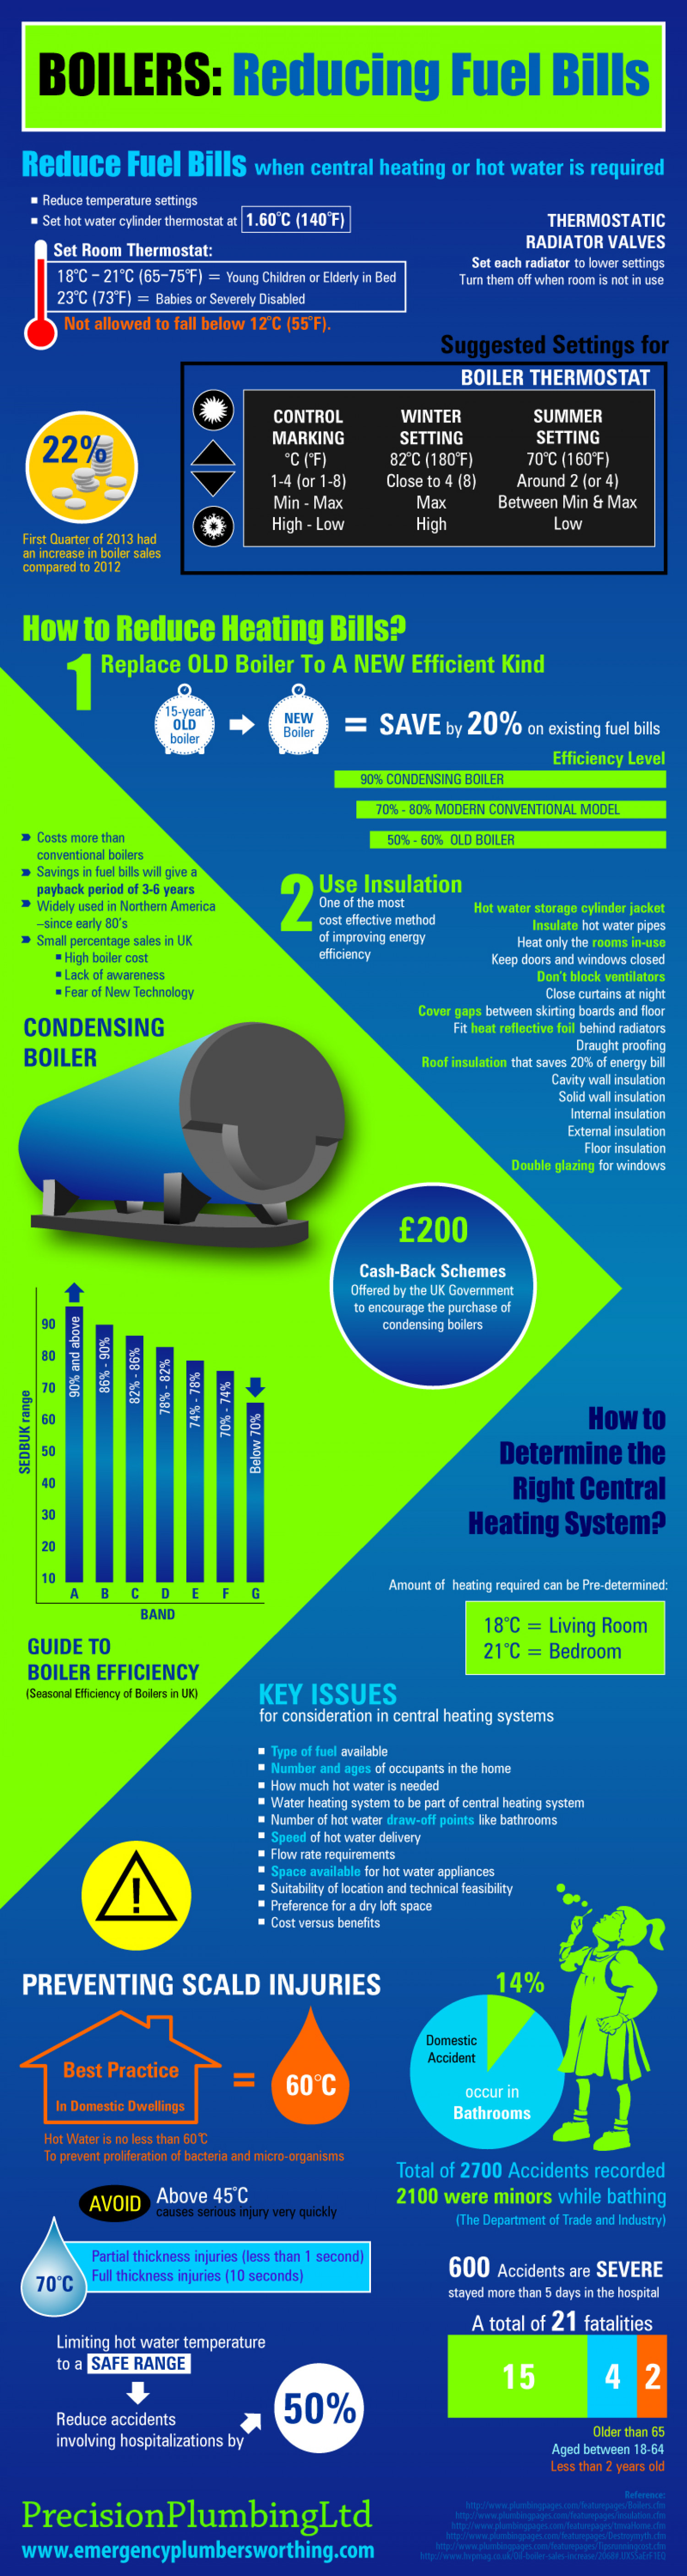 Boilers: Reducing Fuel Bills Infographic